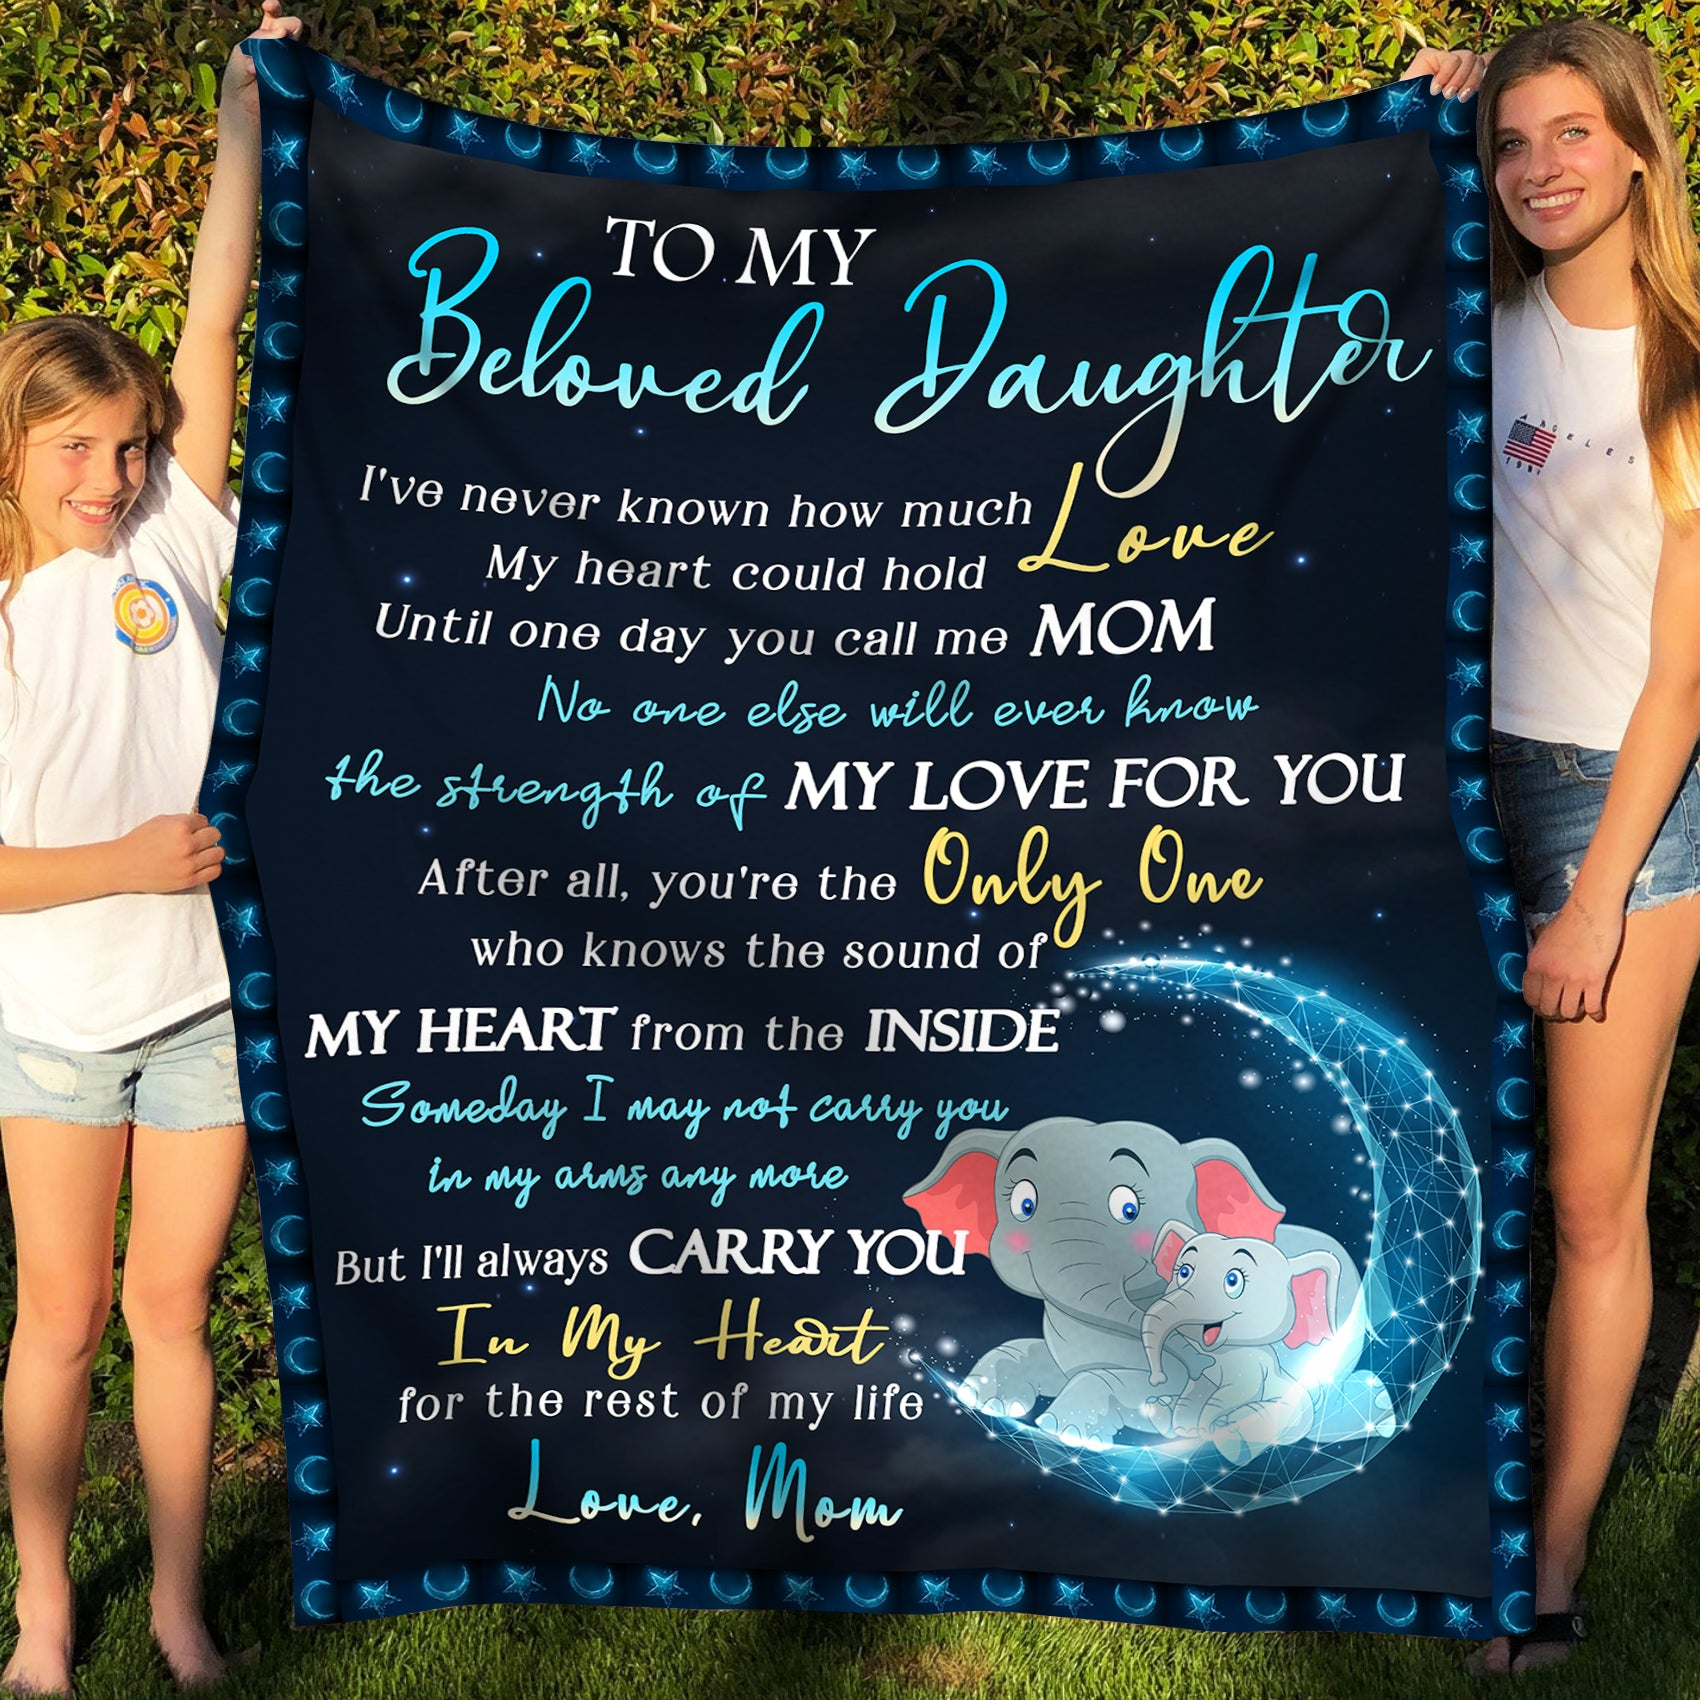 To My Daughter - Fleece Blanket - Carry You In My Heart - Gift for Daughter from Mother - Birthday Gifts, Blanket with Quotes - 1687